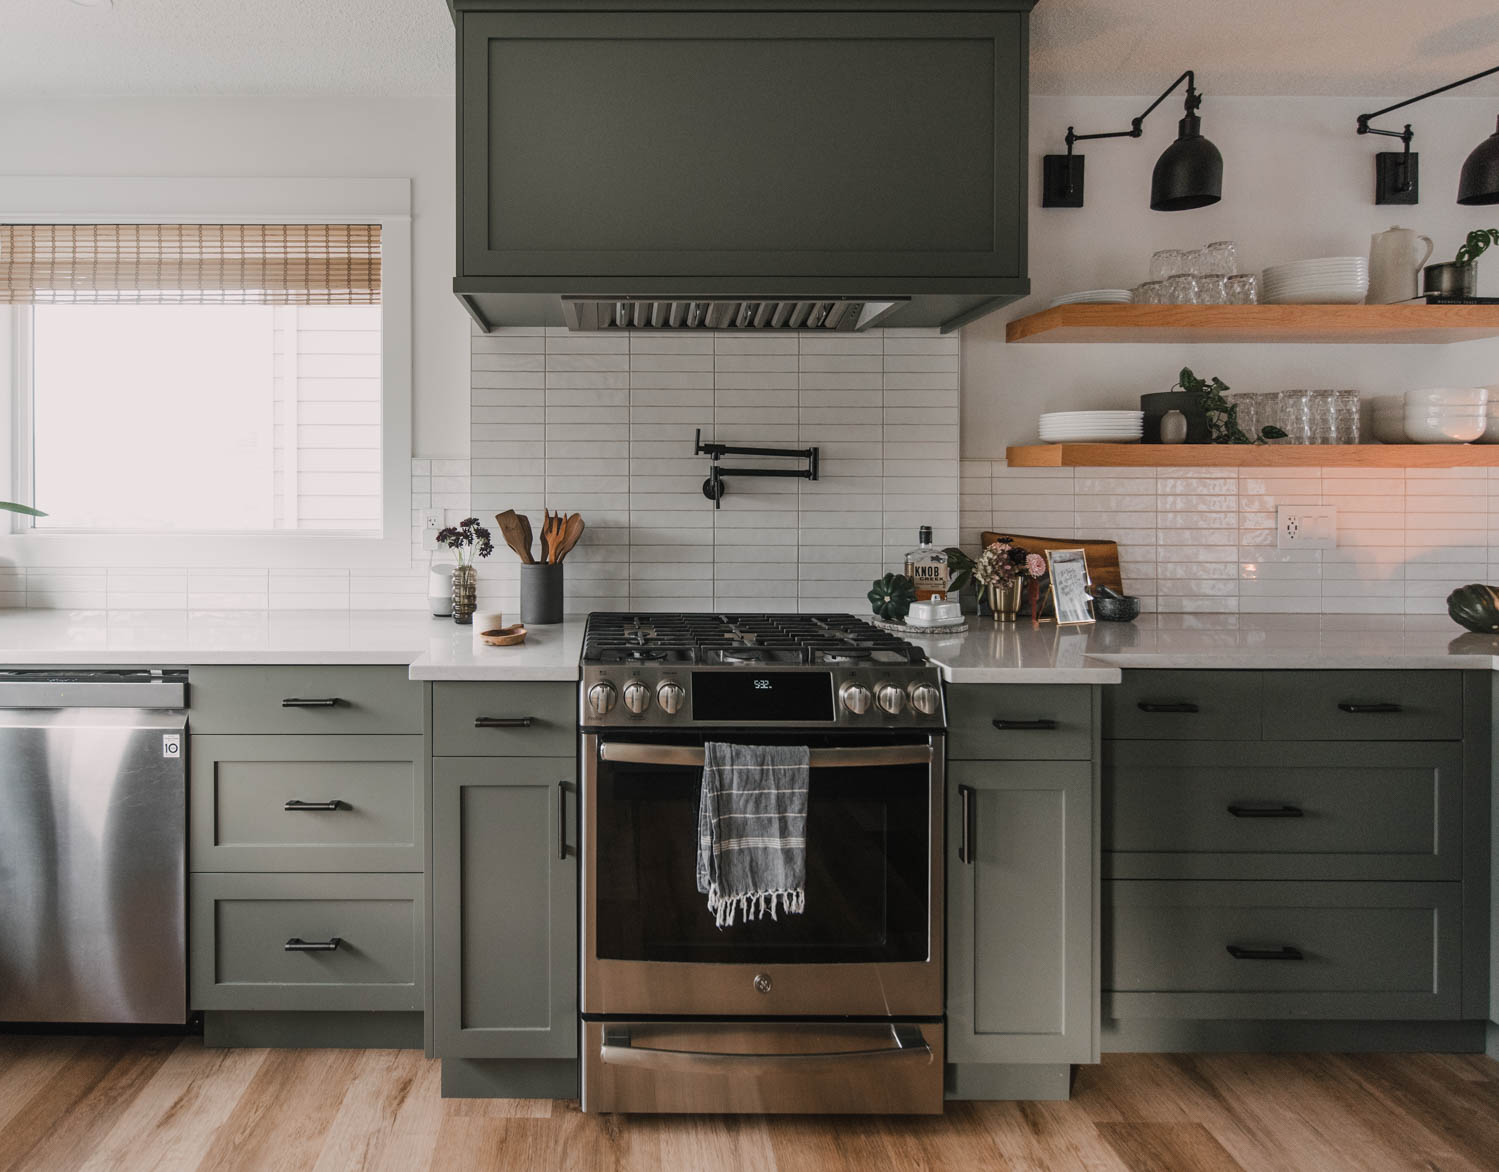 Fall Home Decor in the kitchen